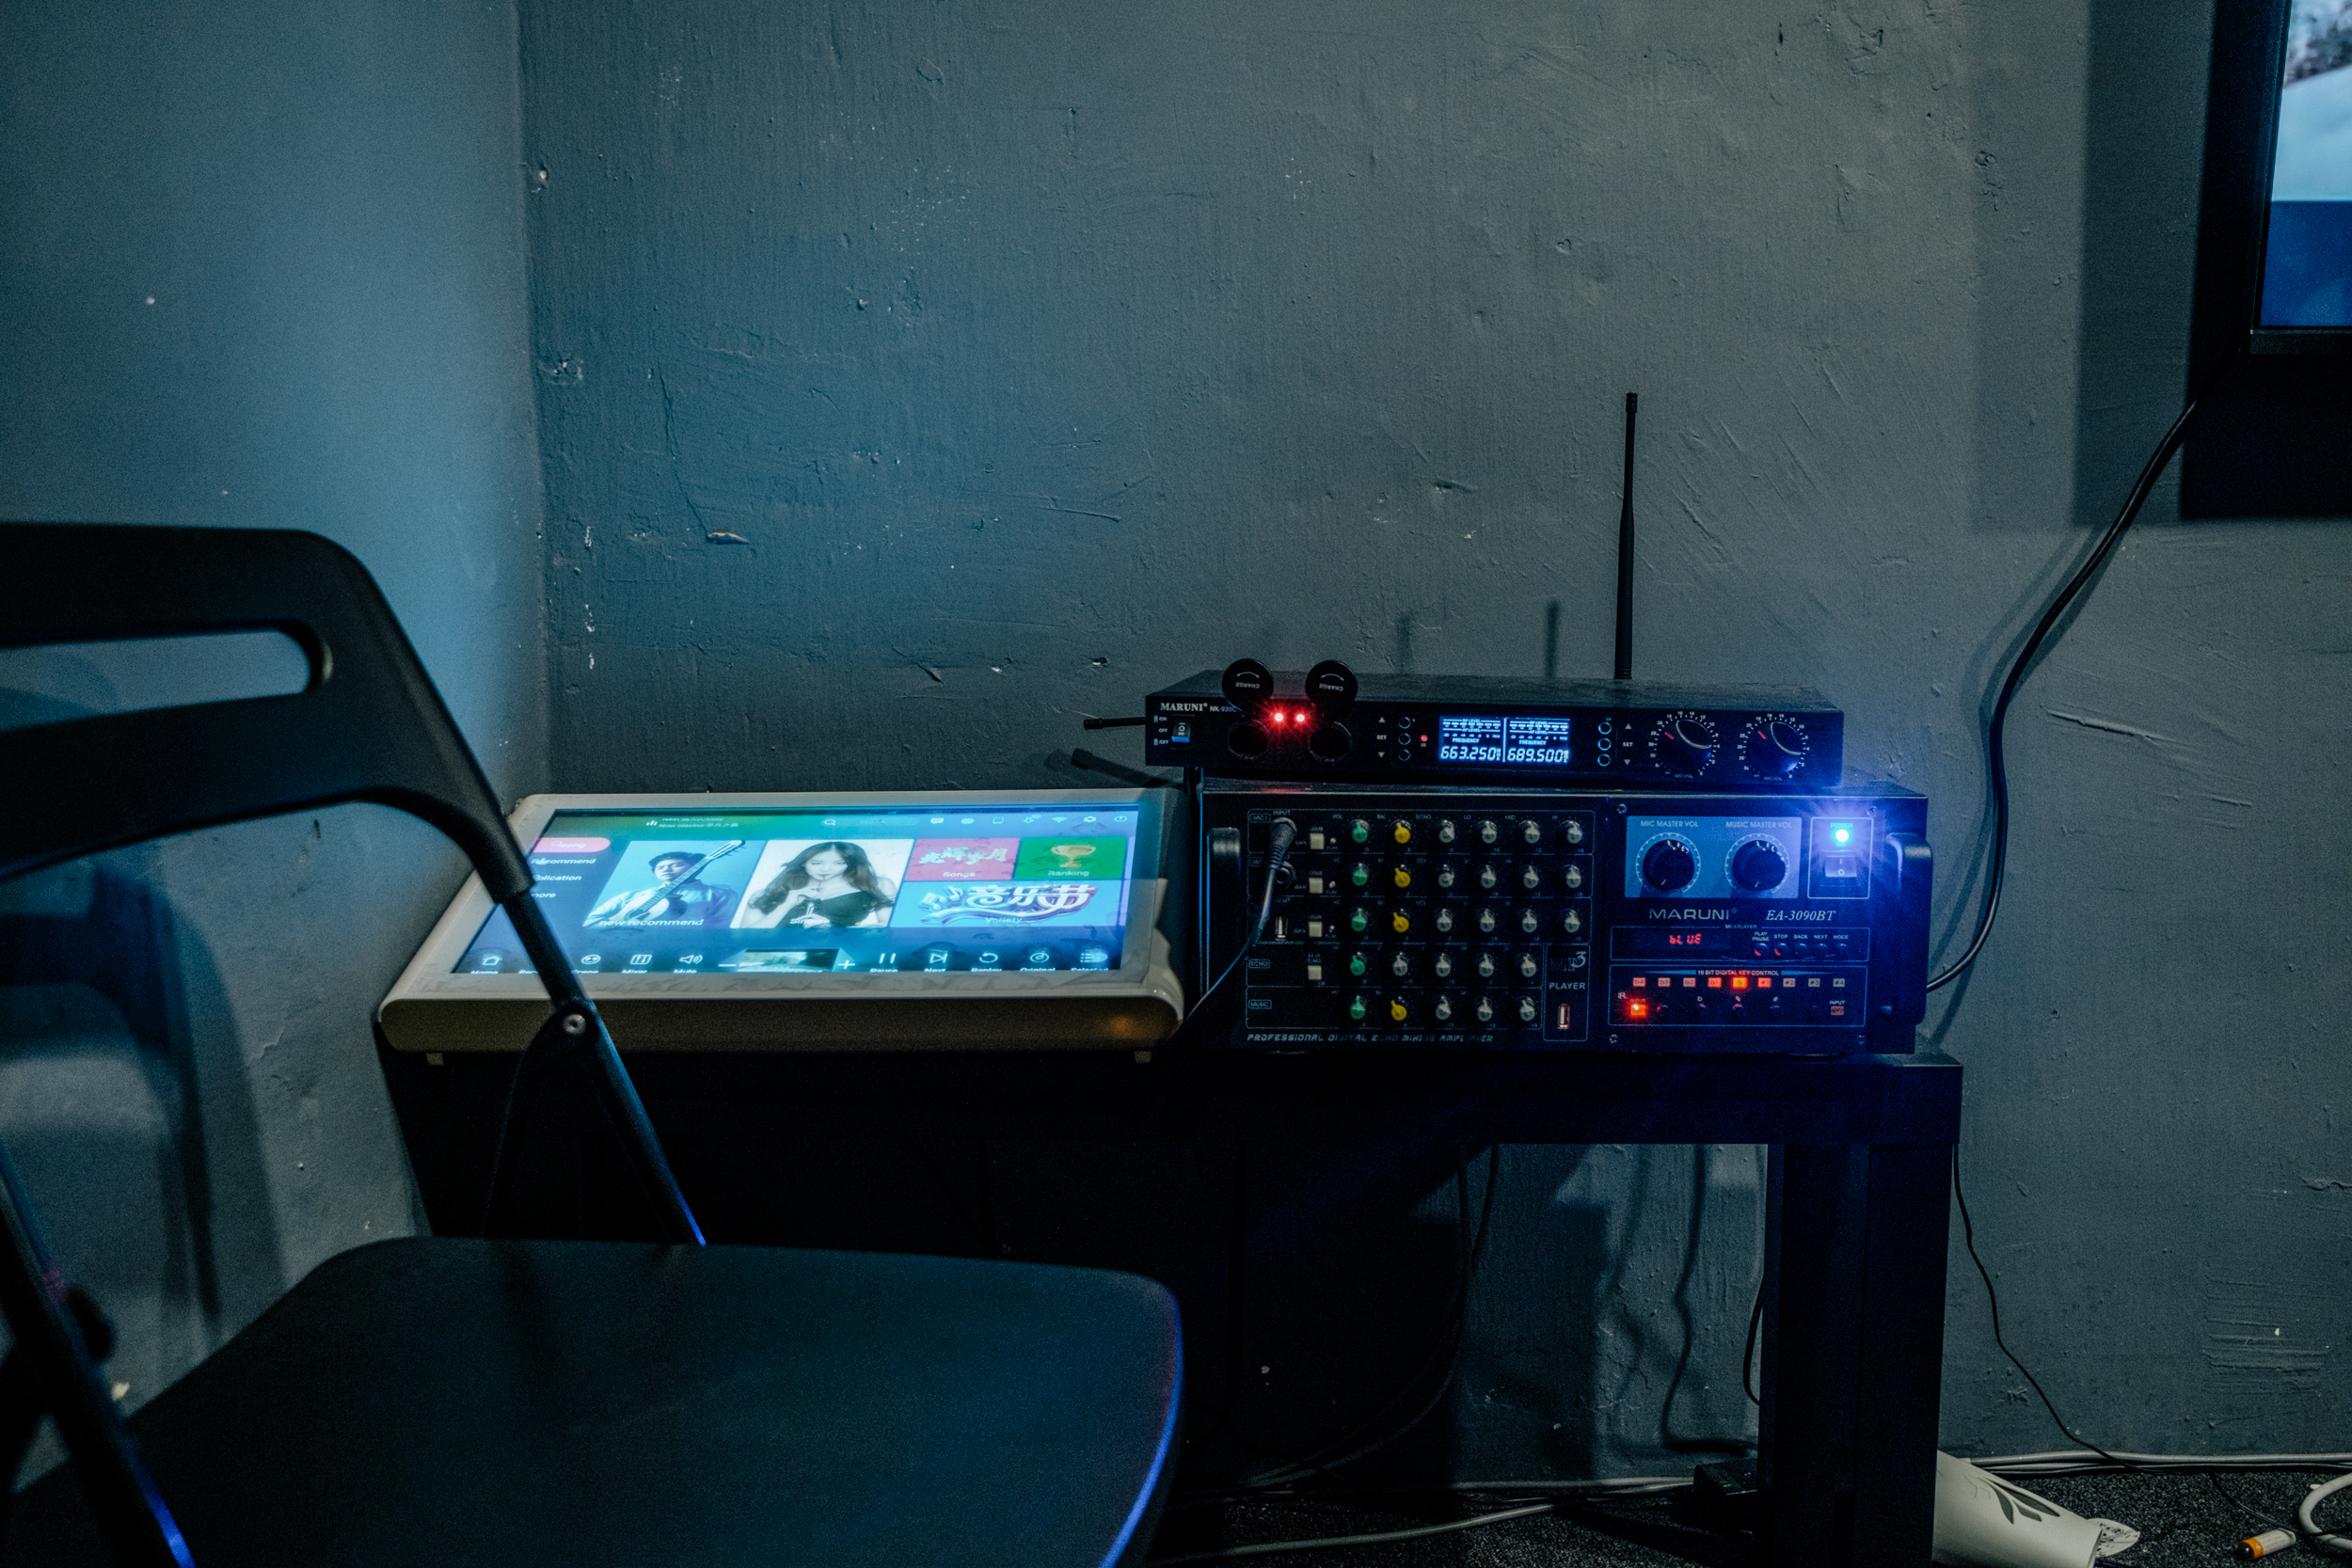 Image of the karaoke console and audio equipment